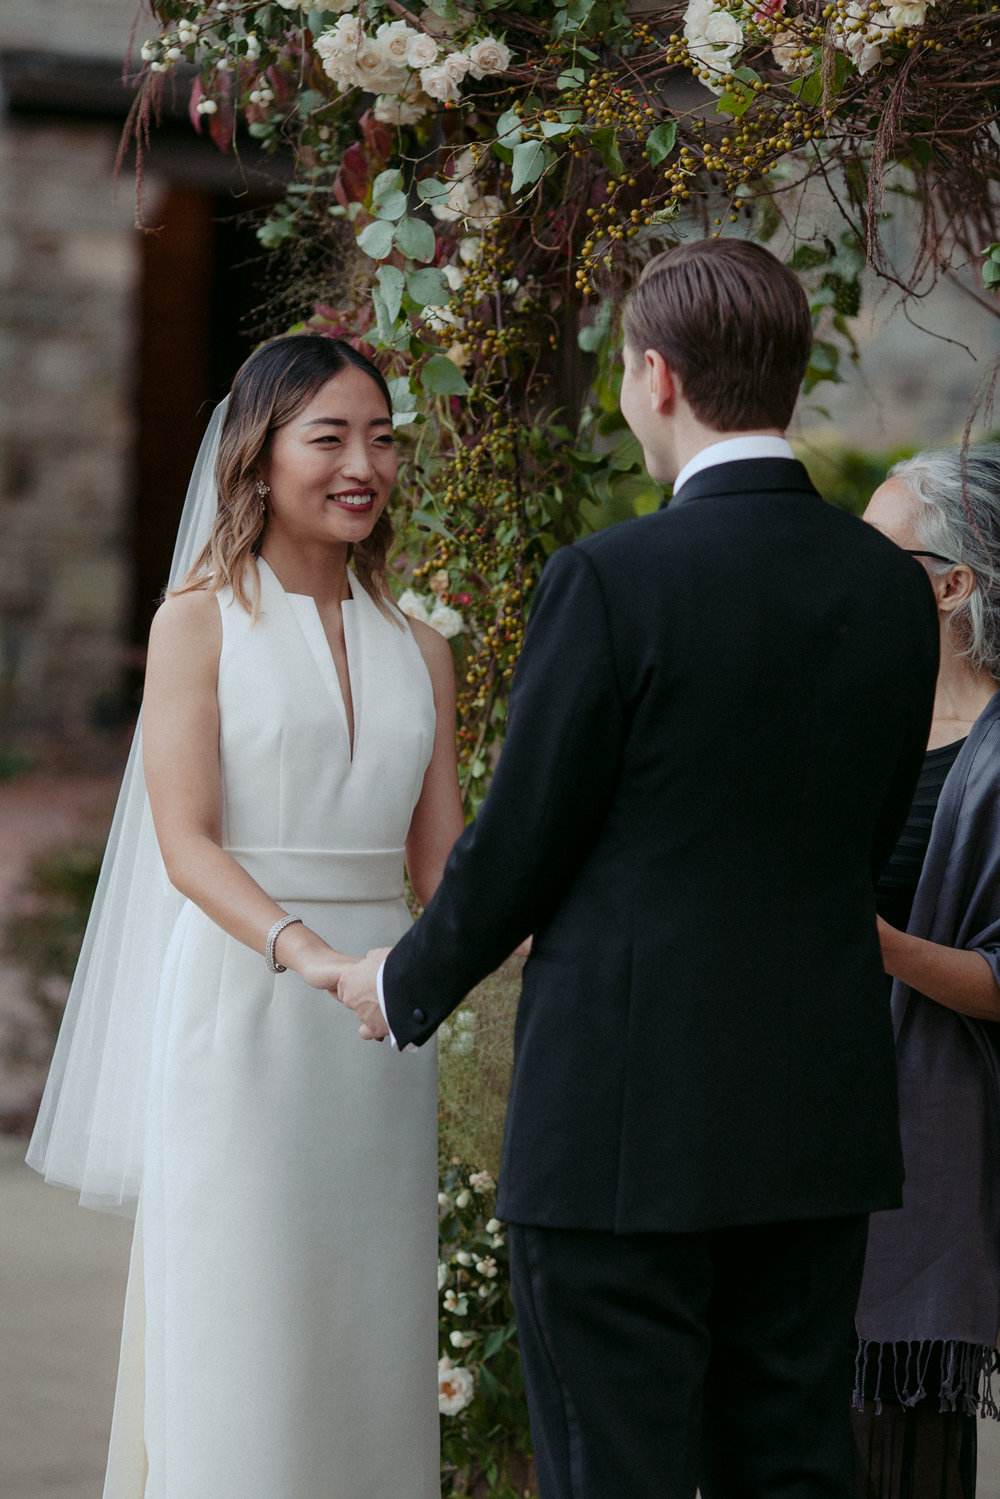 Tall & Small Events NYC, S+S, Stylish Modern, Jewish-Korean Interfaith Designer New York Real Wedding at Blue Hill at Stone Barns, Tarrytown, NY. Photo: Les Loups